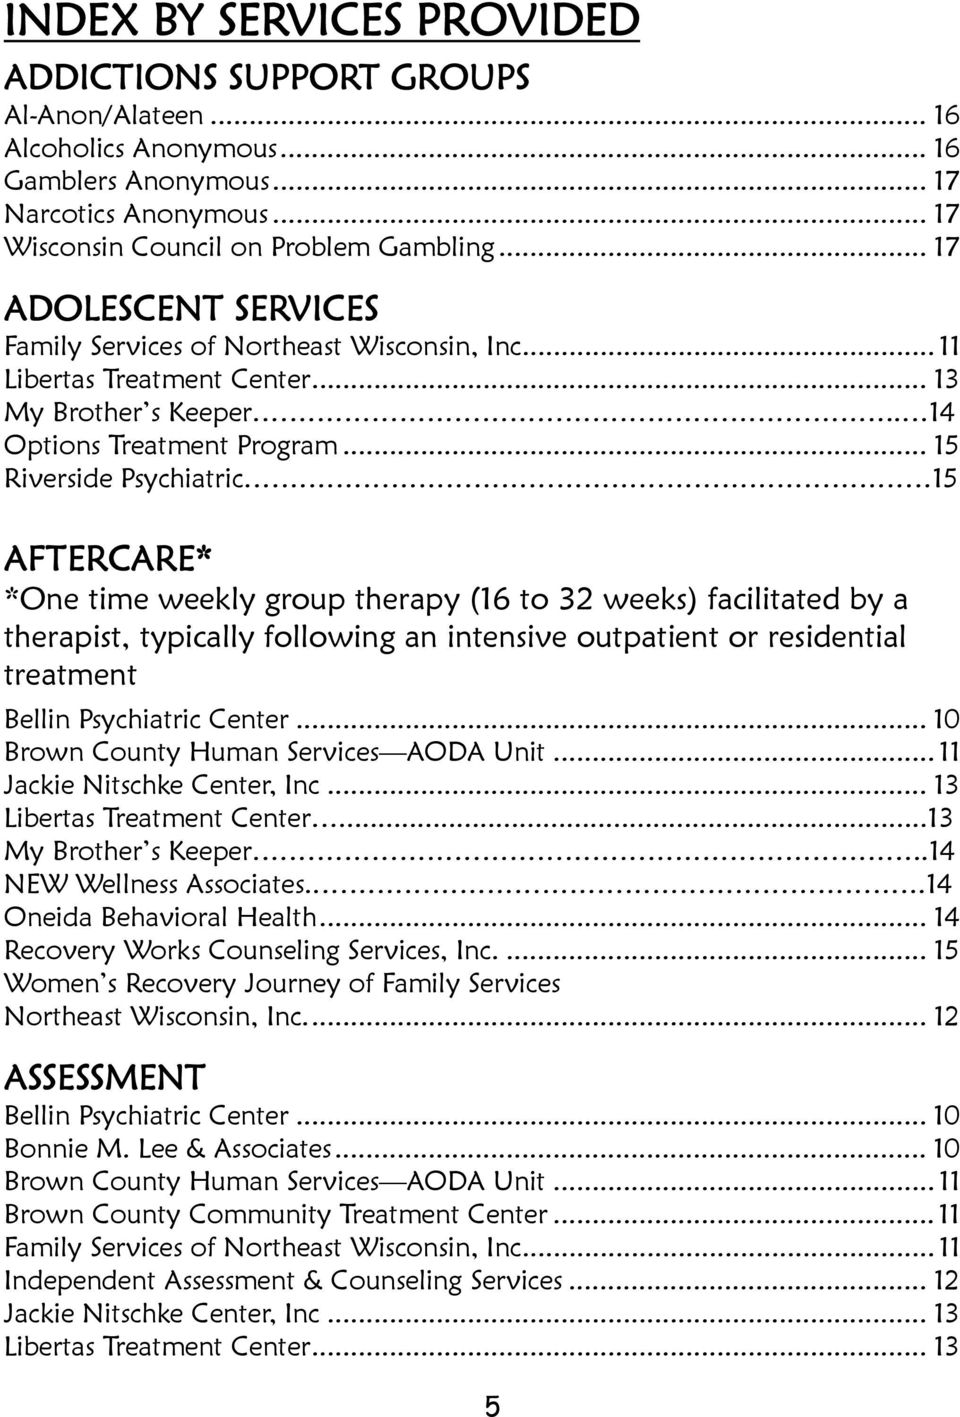 .. 15 Riverside Psychiatric 15 AFTERCARE* *One time weekly group therapy (16 to 32 weeks) facilitated by a therapist, typically following an intensive outpatient or residential treatment Bellin